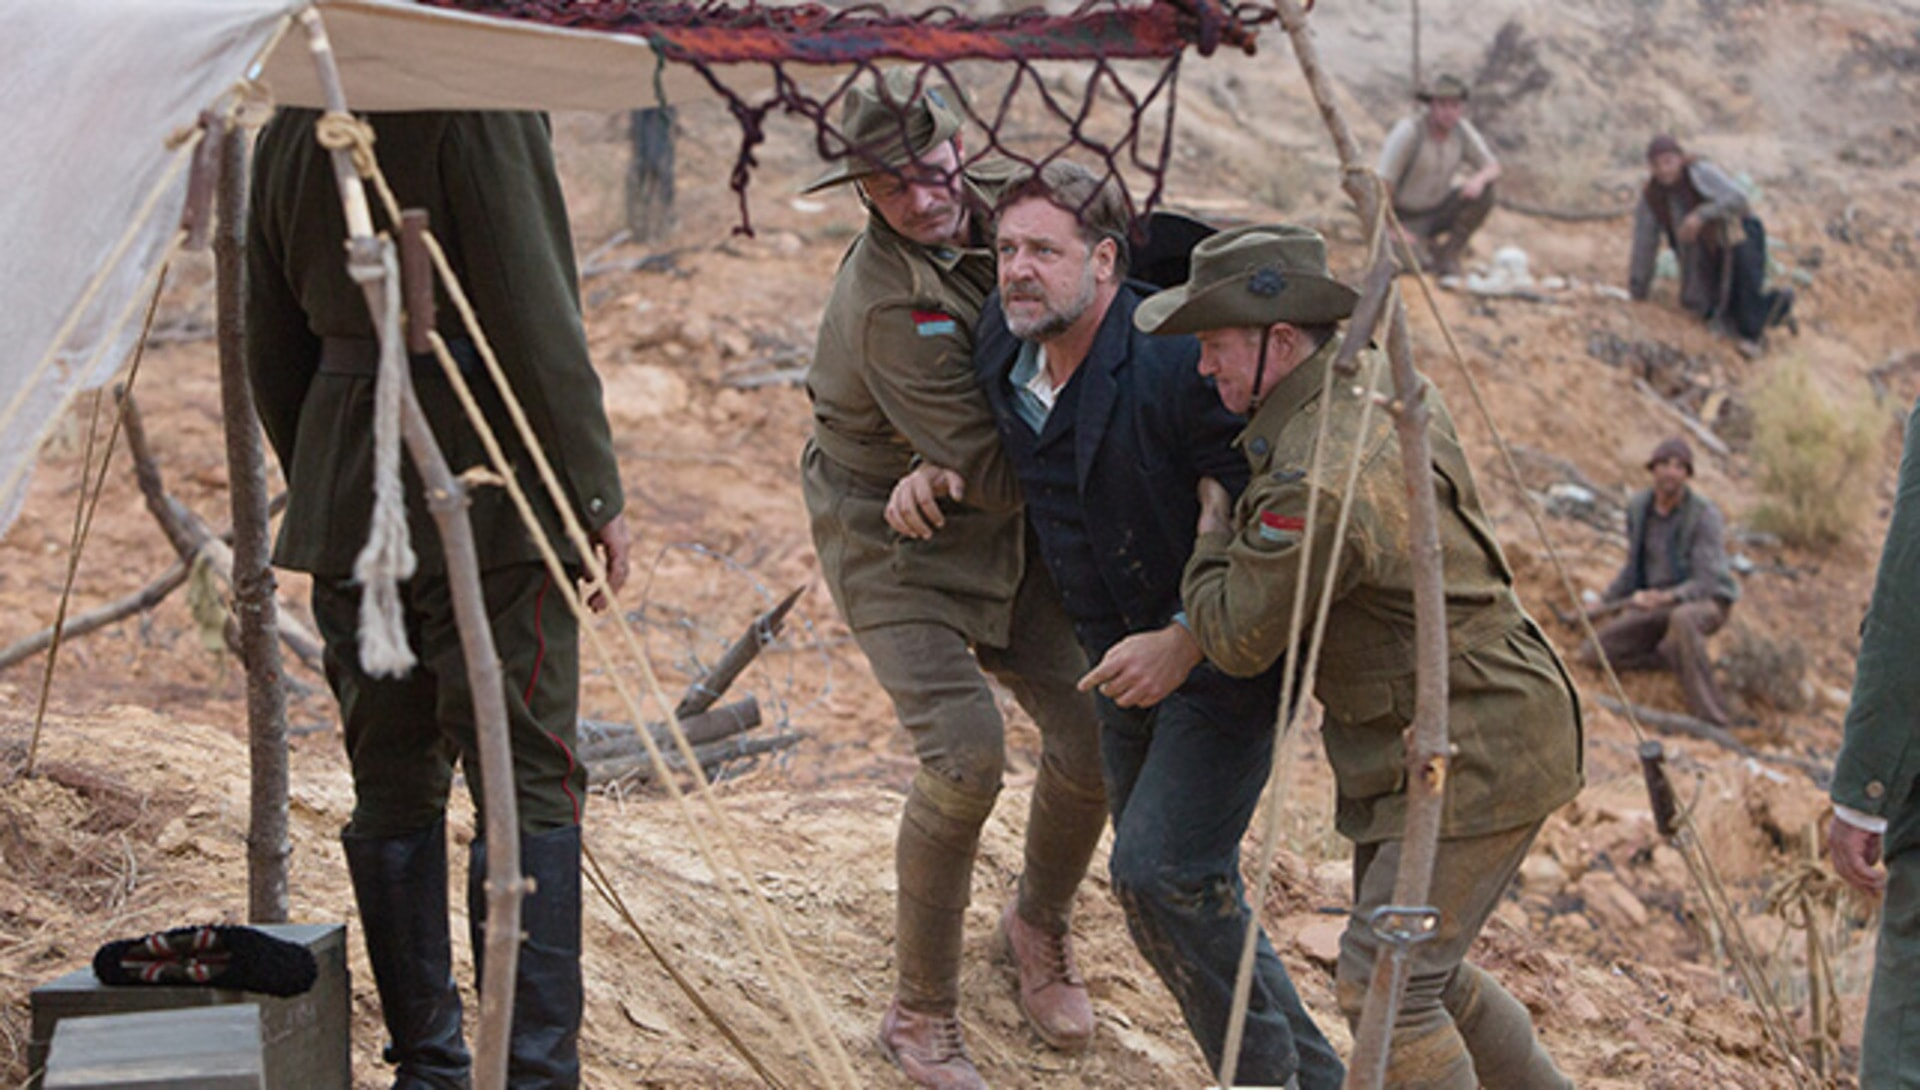 The Water Diviner - Image 10